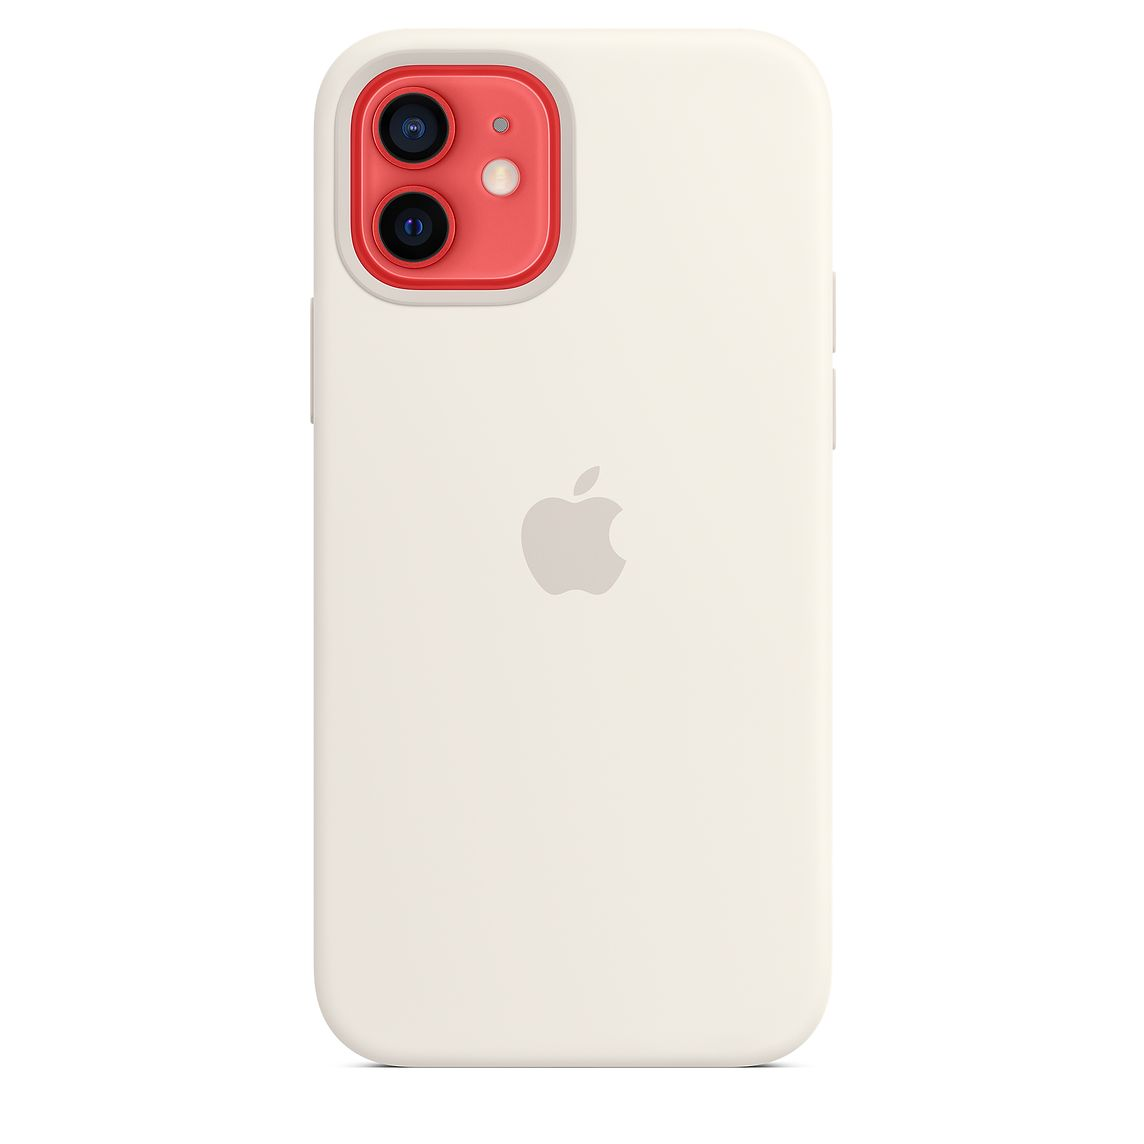 - iPhone 12 | 12 Pro Silicone Case with MagSafe / Blanco 3